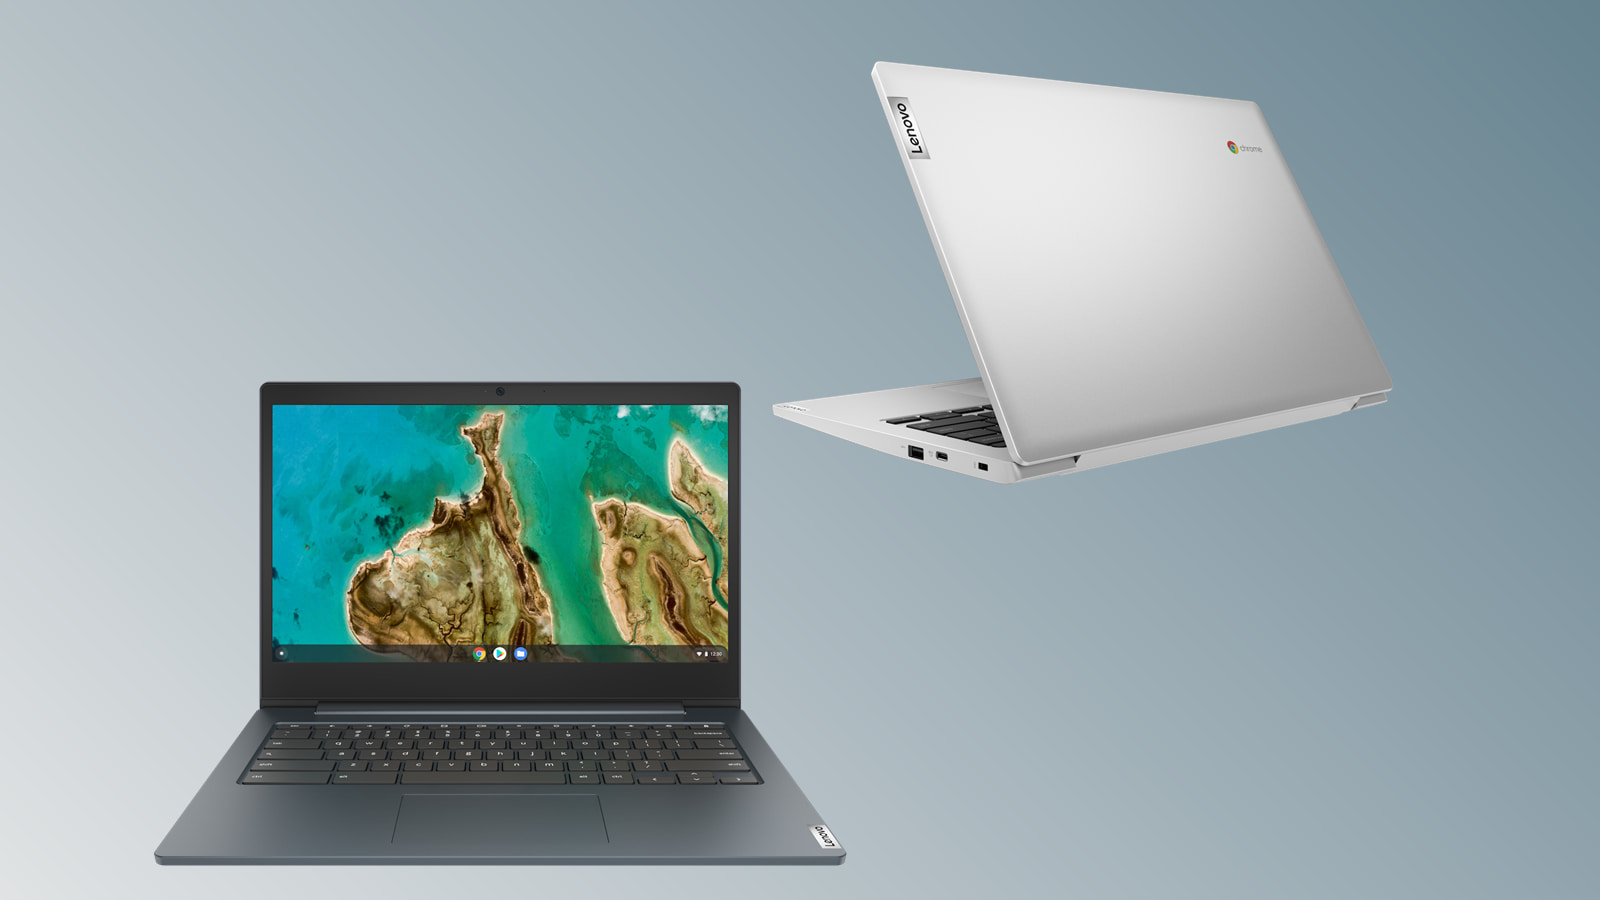 Lenovo adds the Ideapad 3 Chromebook 14 to its growing lineup